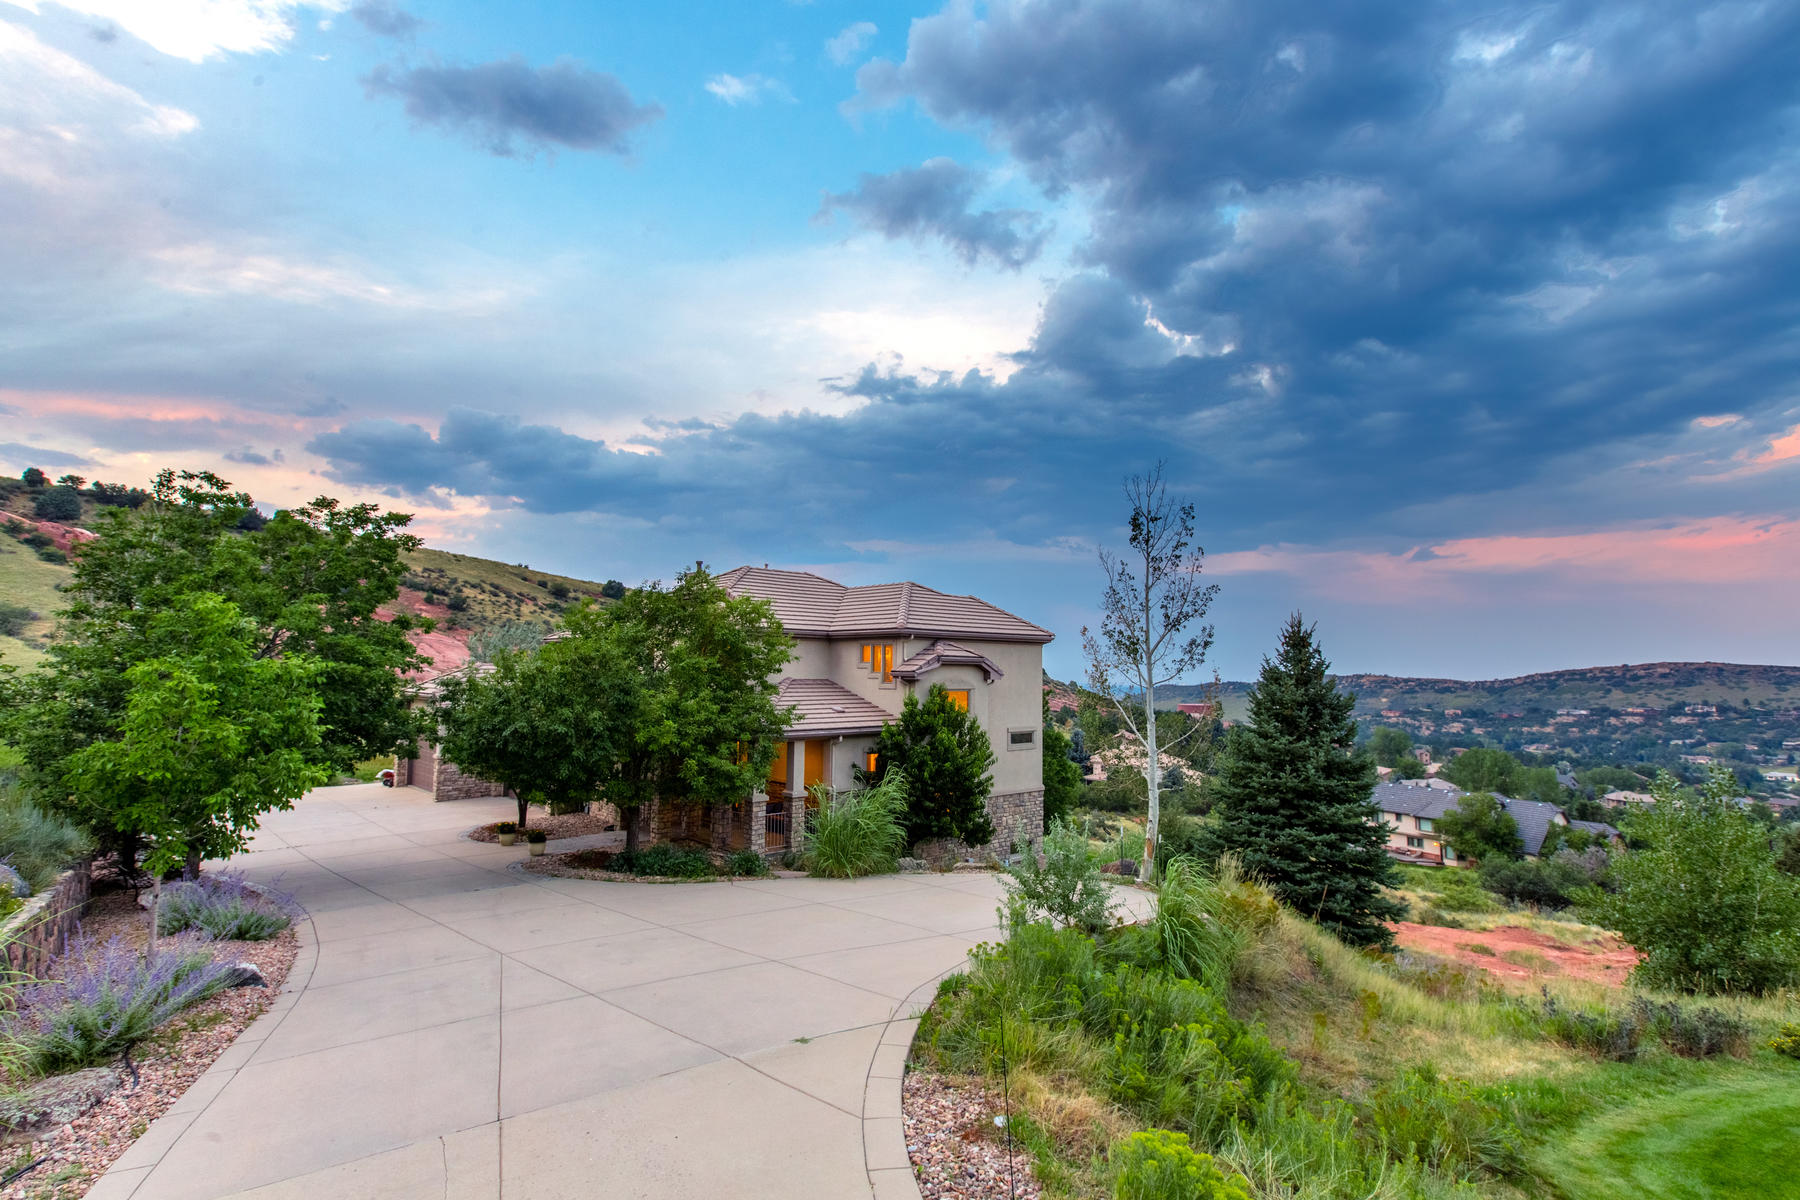 Nhà ở một gia đình vì Bán tại This Is The One You Have Been Waiting For In Willow Springs 6276 Rock Ledge Lane Morrison, Colorado, 80465 Hoa Kỳ